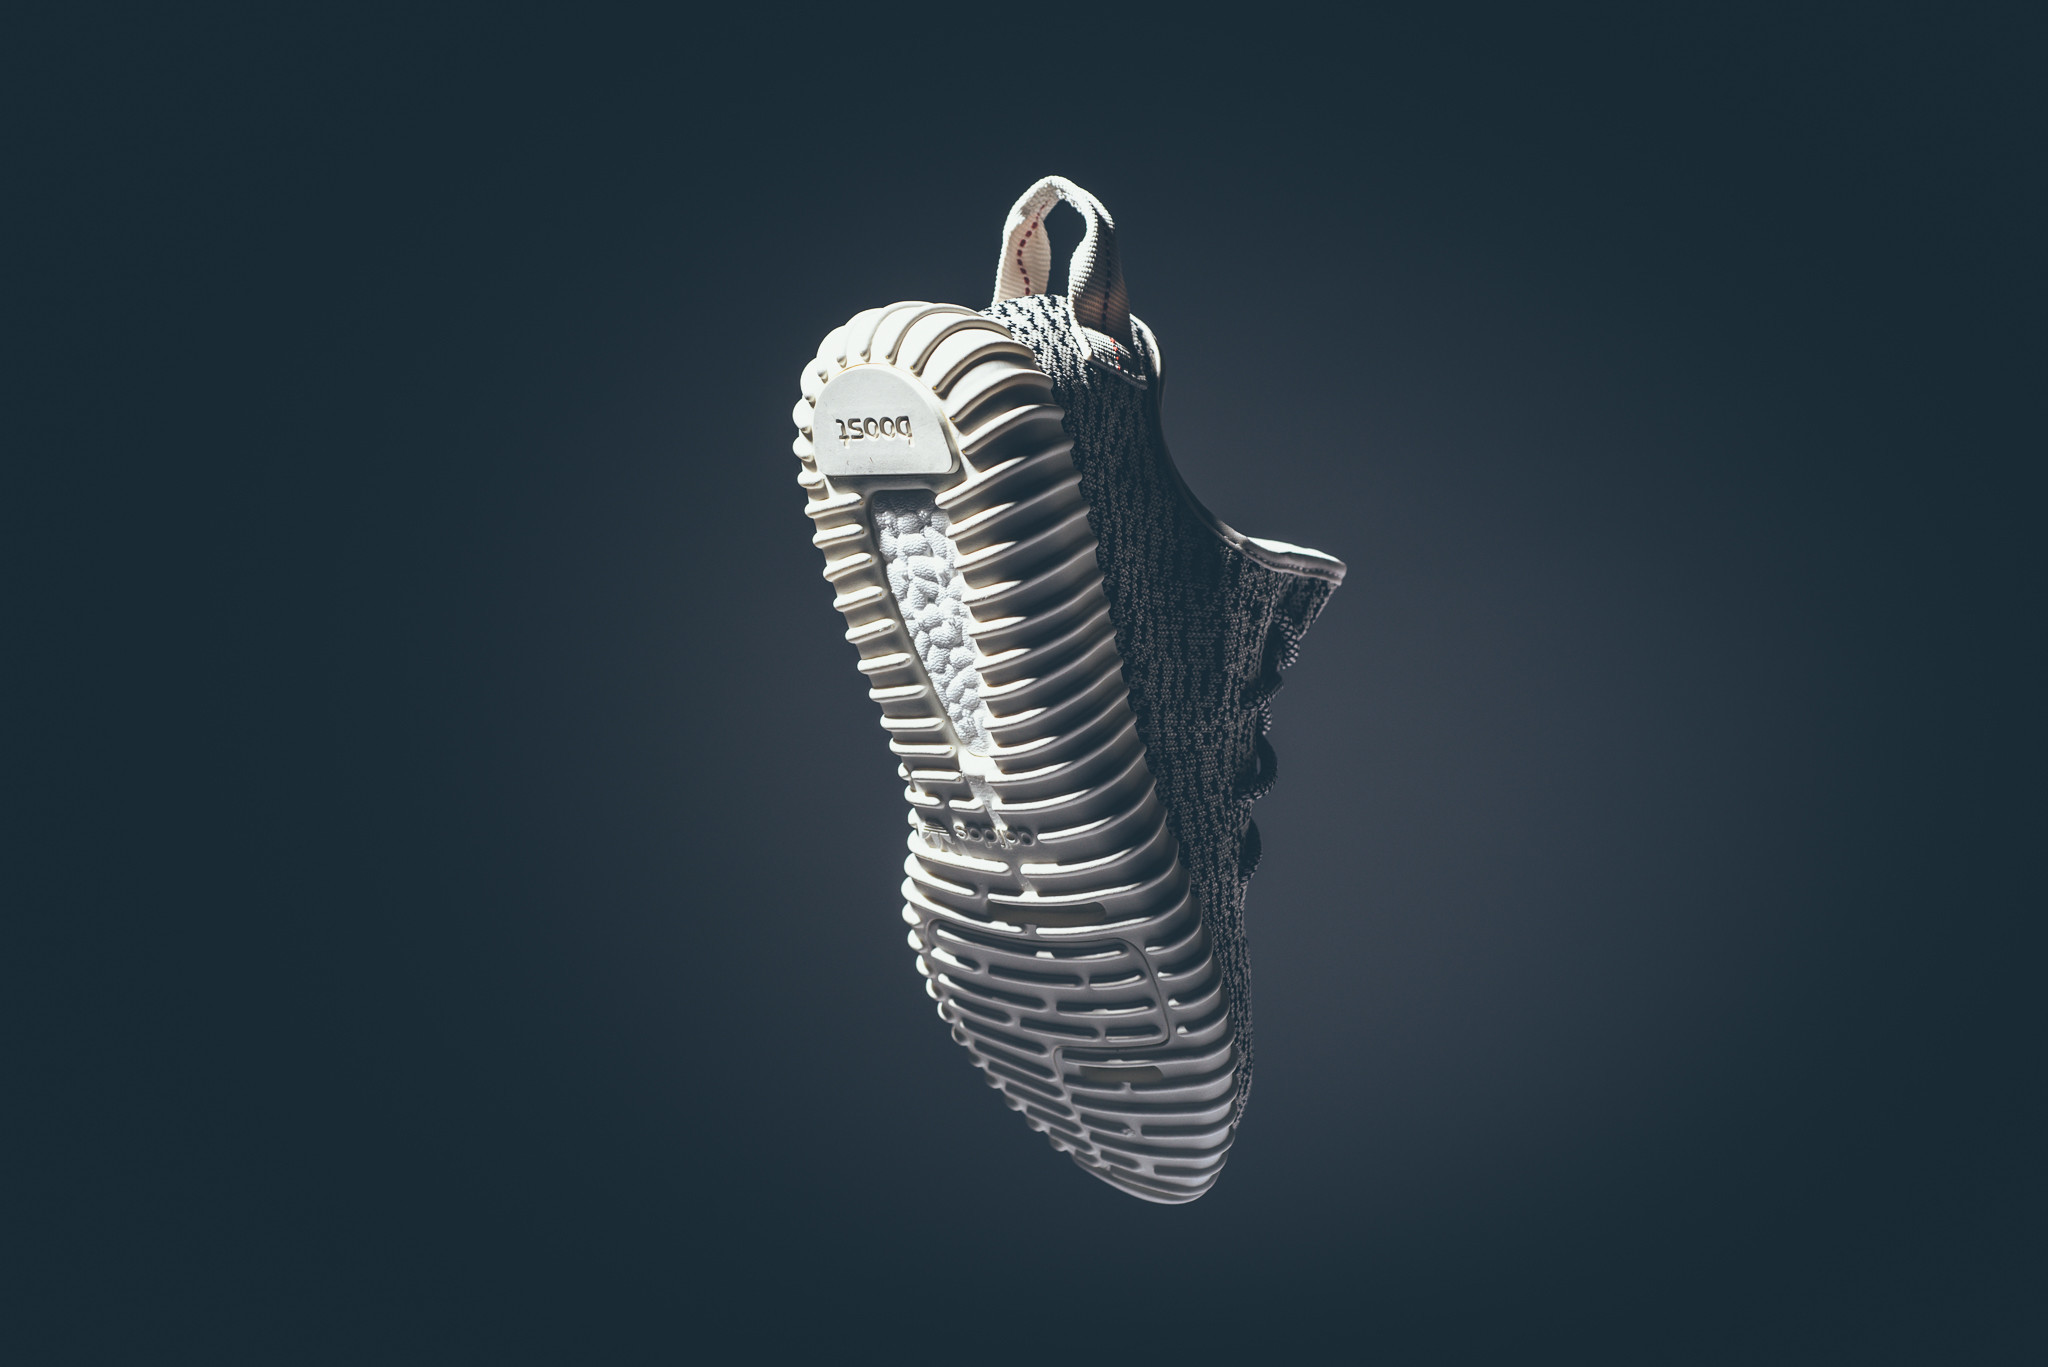 Yeezy Wallpapers (72+ images)